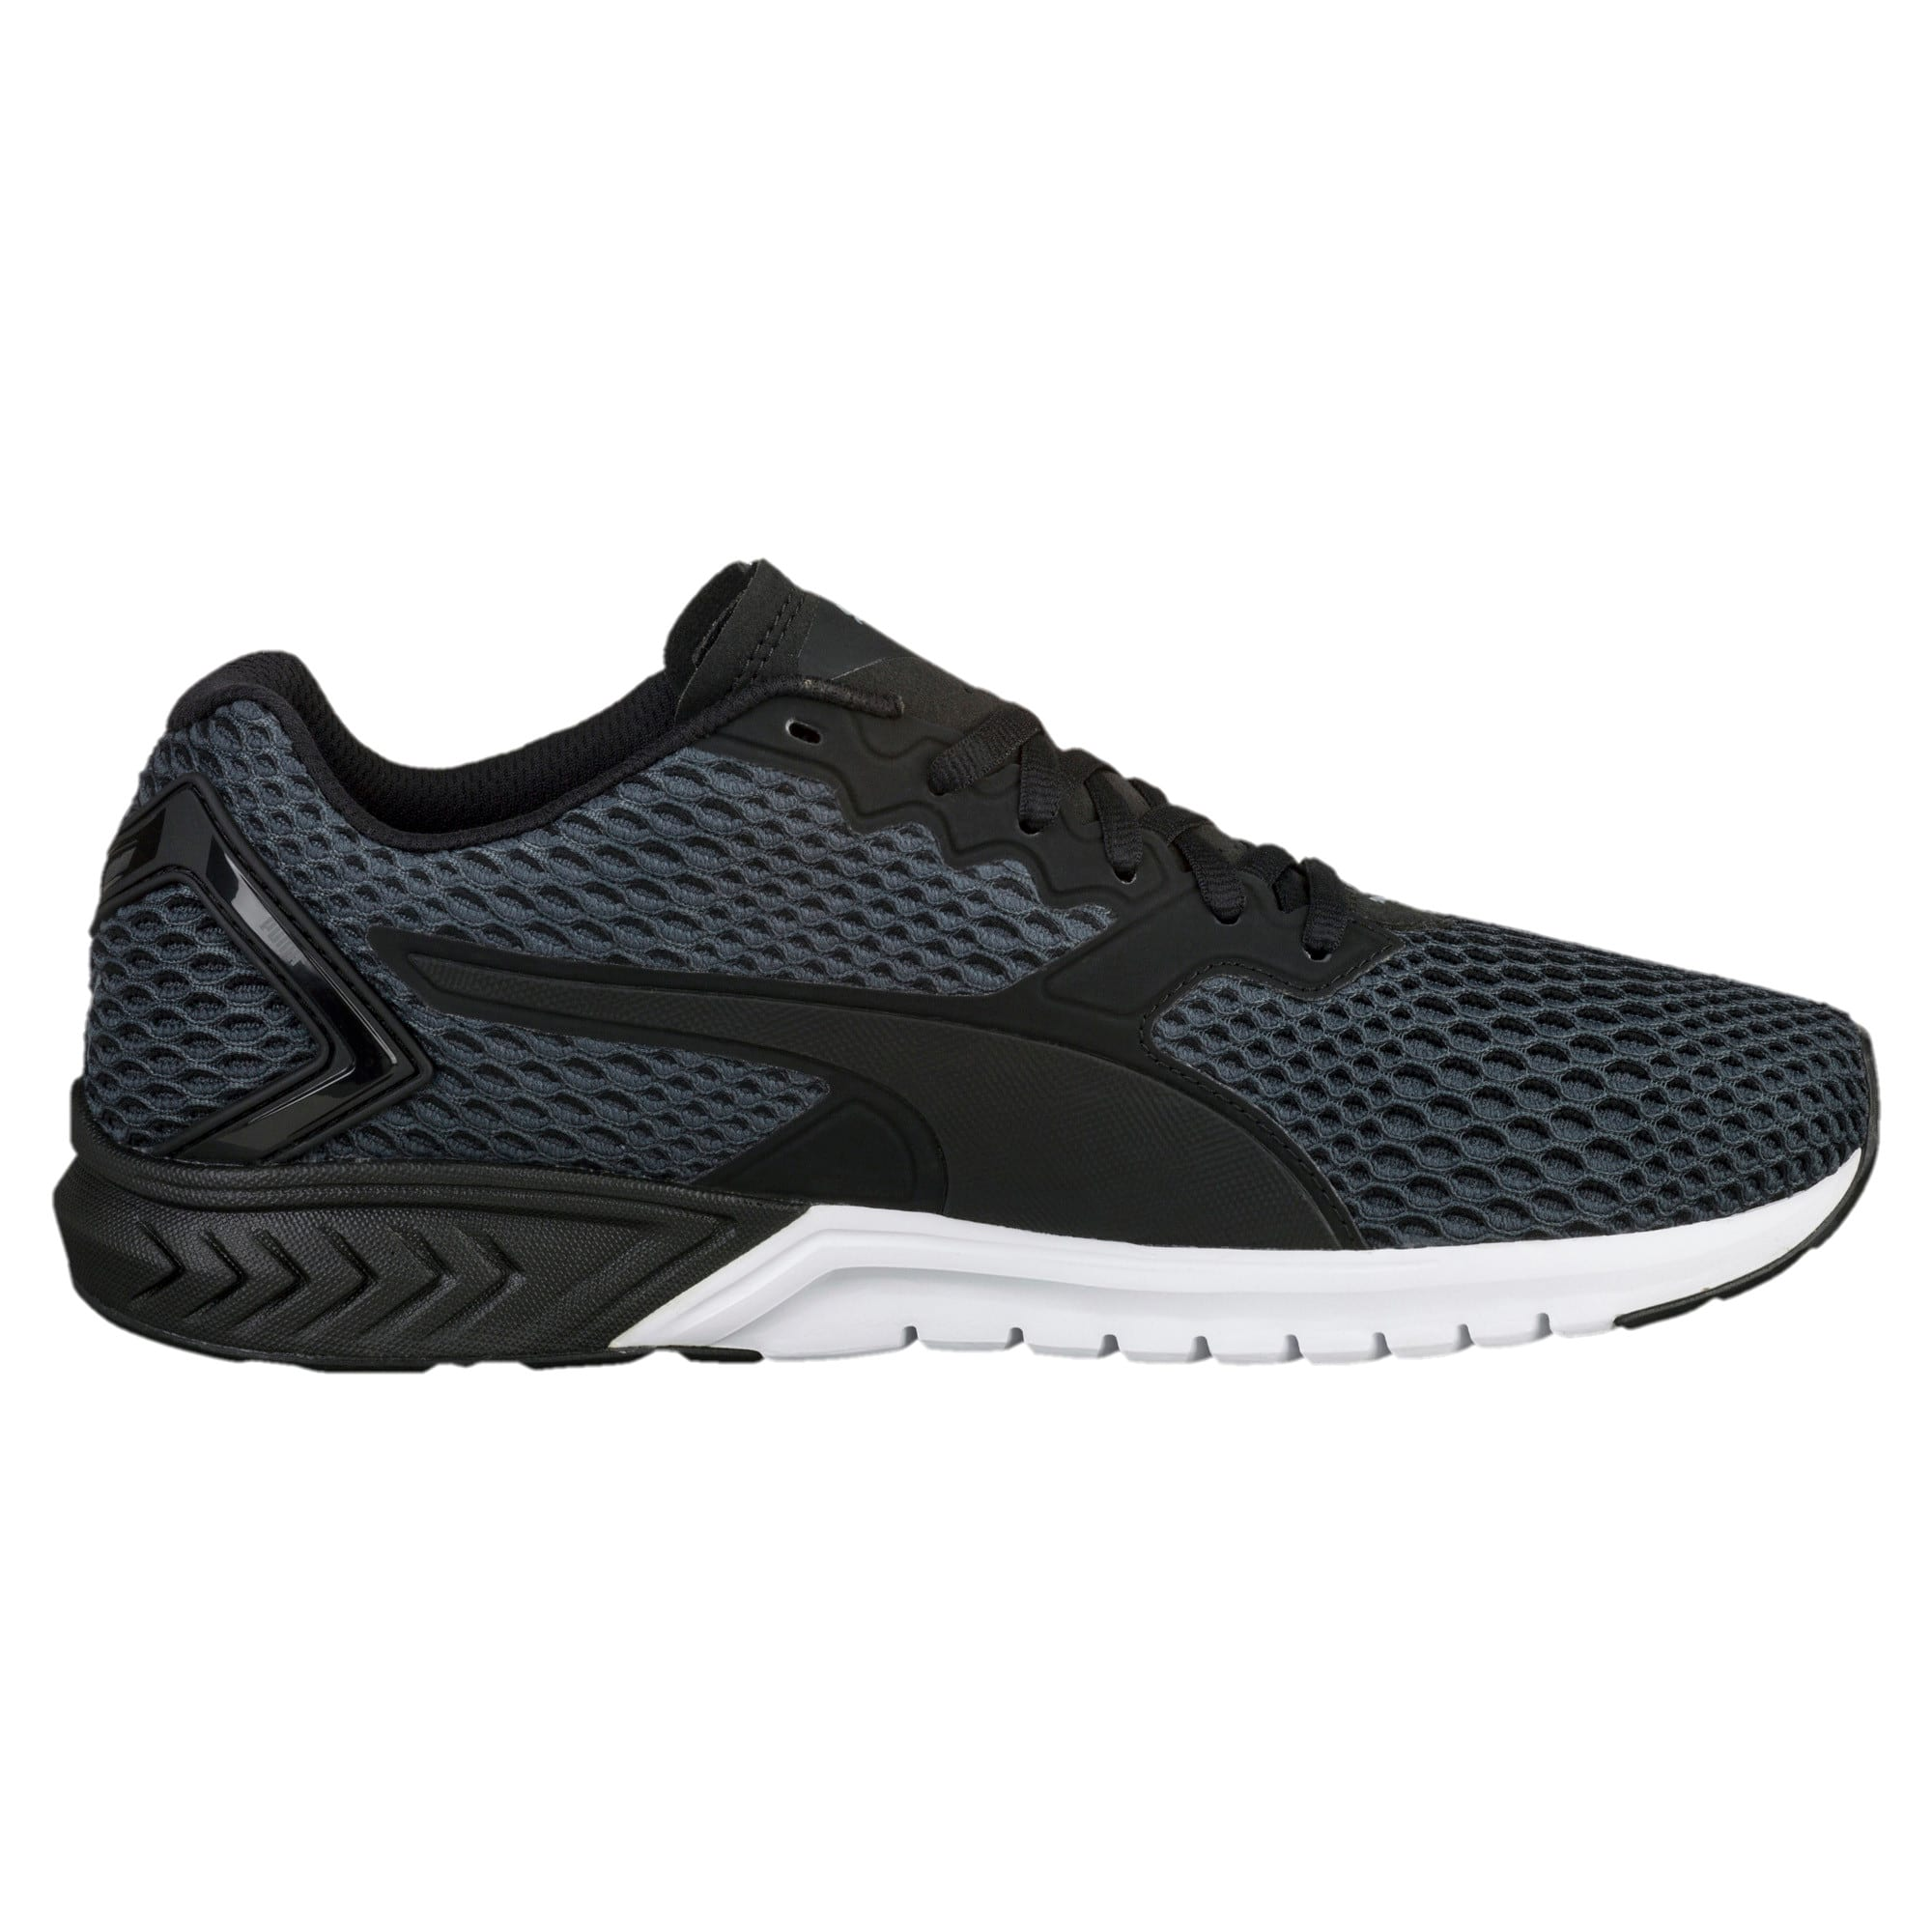 Thumbnail 4 of IGNITE Dual New Core Men's Training Shoes, Puma Black-Asphalt, medium-IND